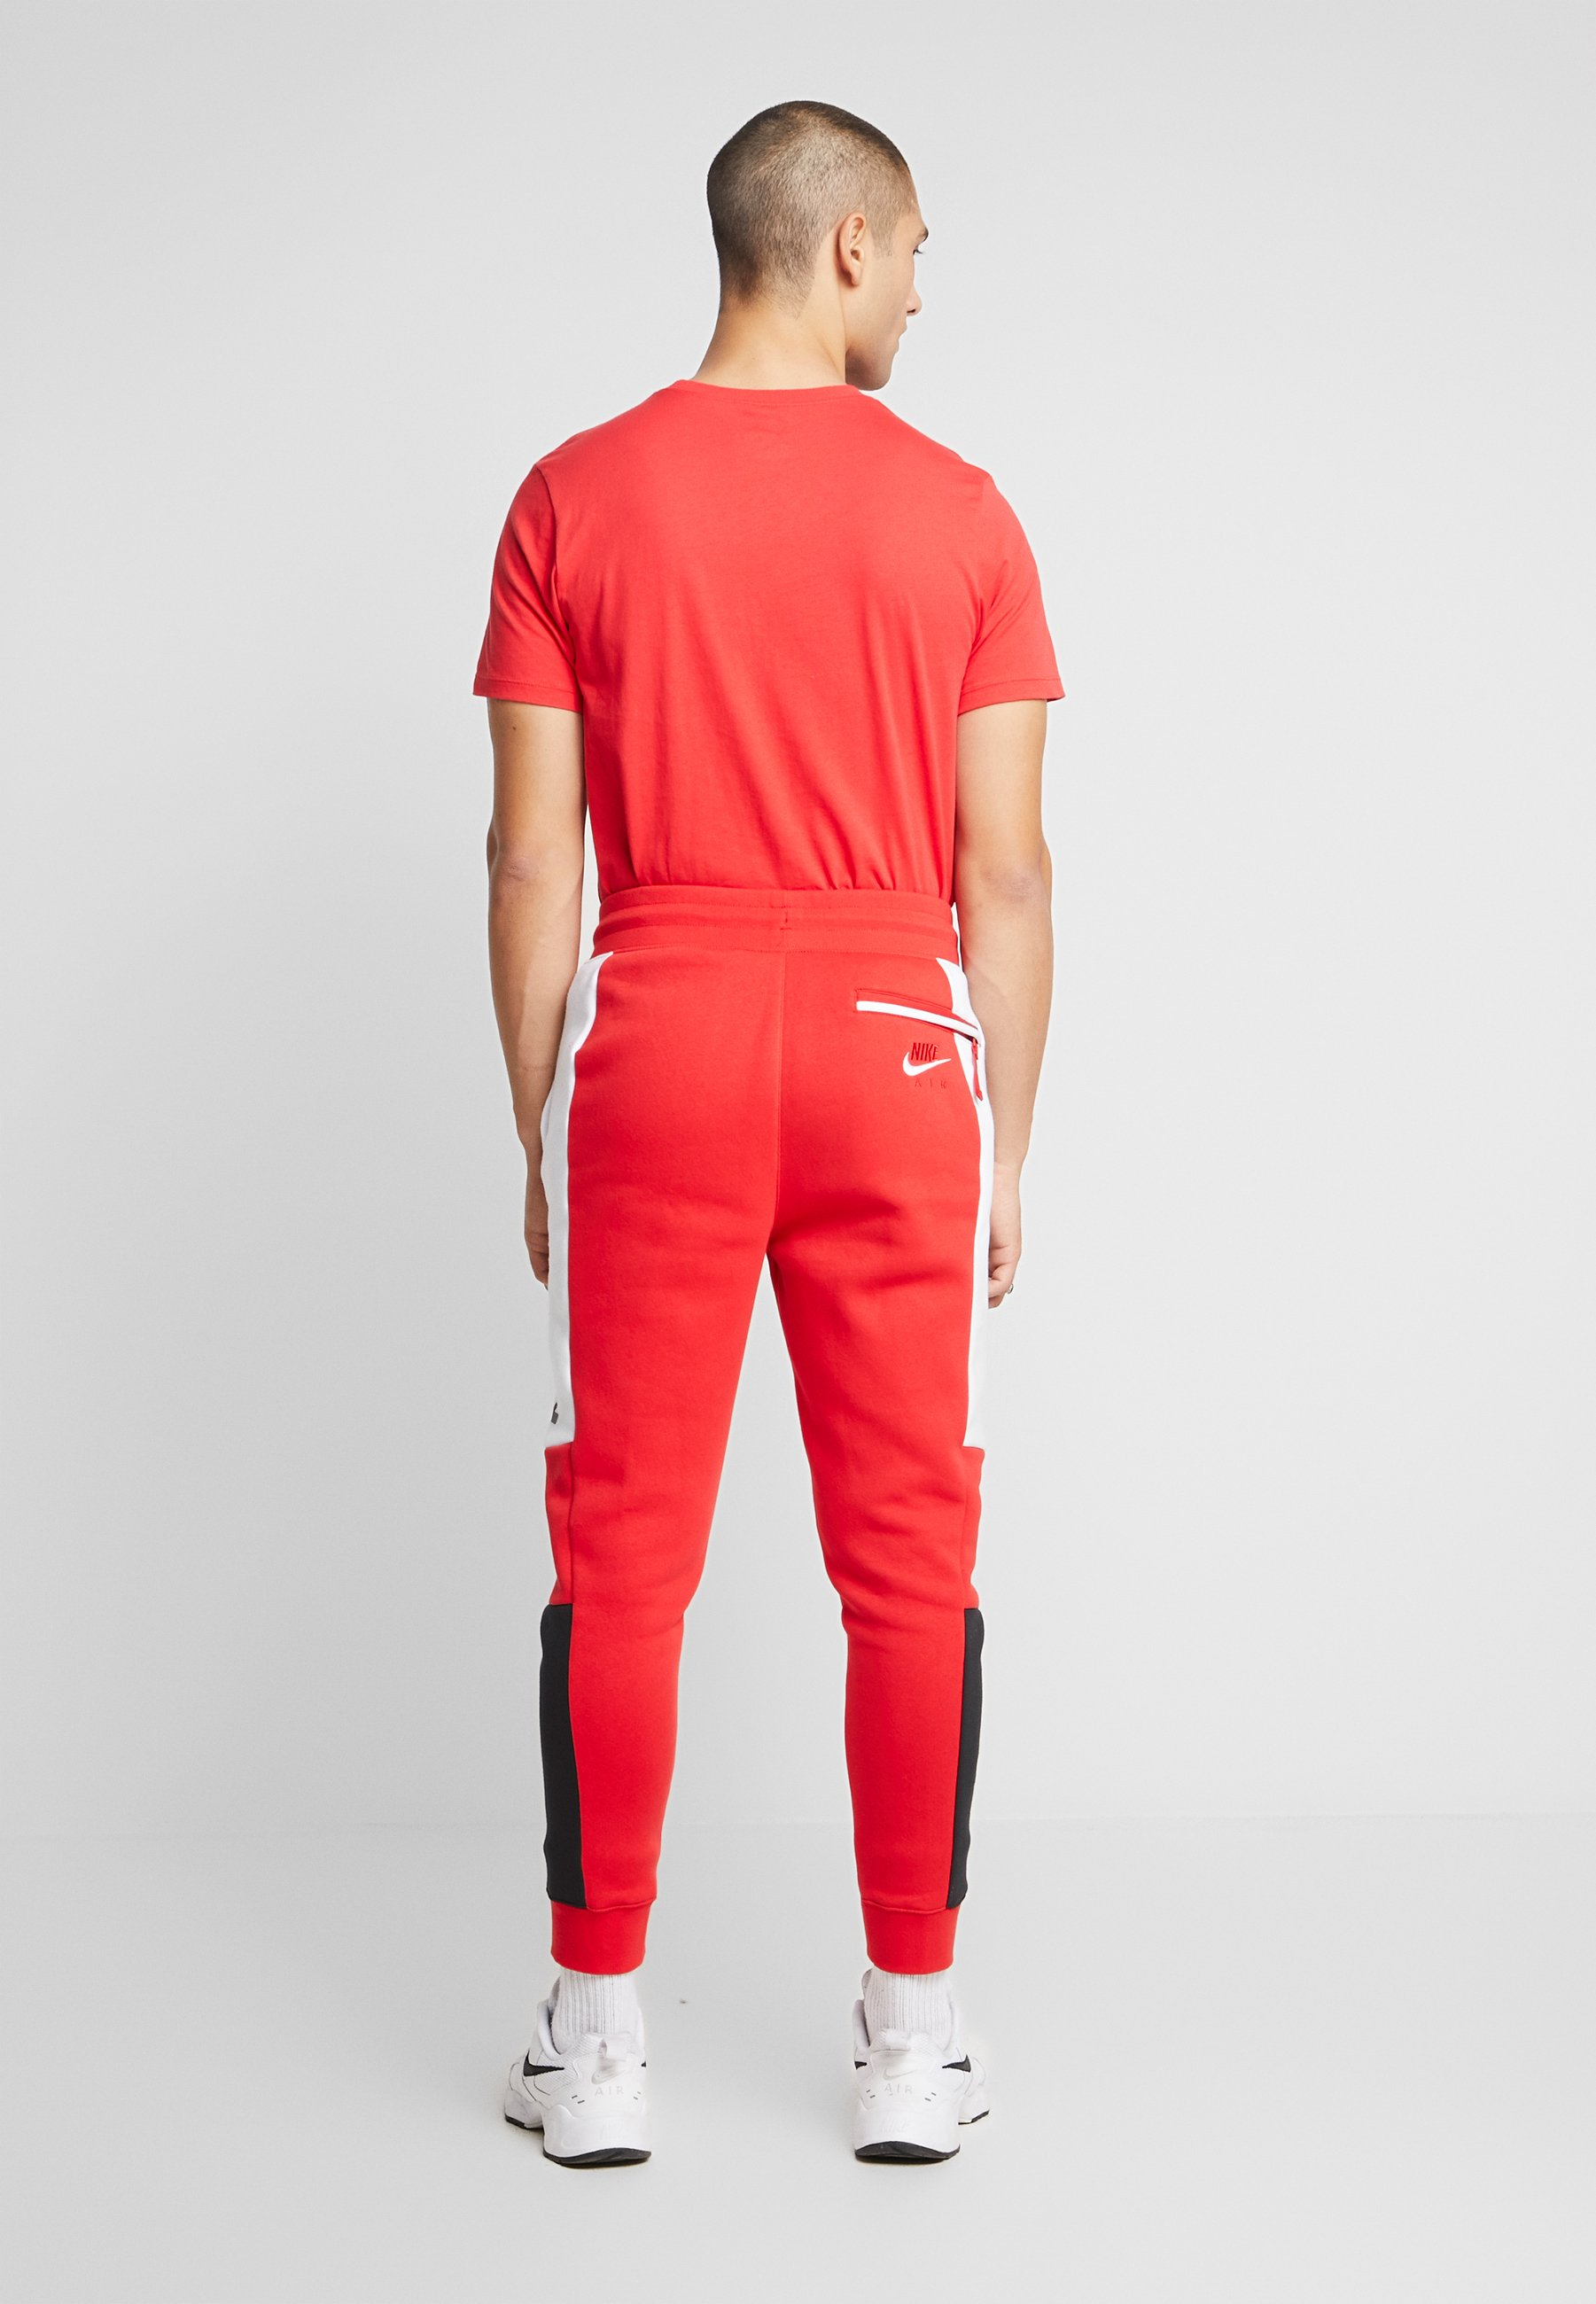 Nike Sportswear M NSW NIKE AIR PANT FLC - Pantalon de survêtement - university red/white/black